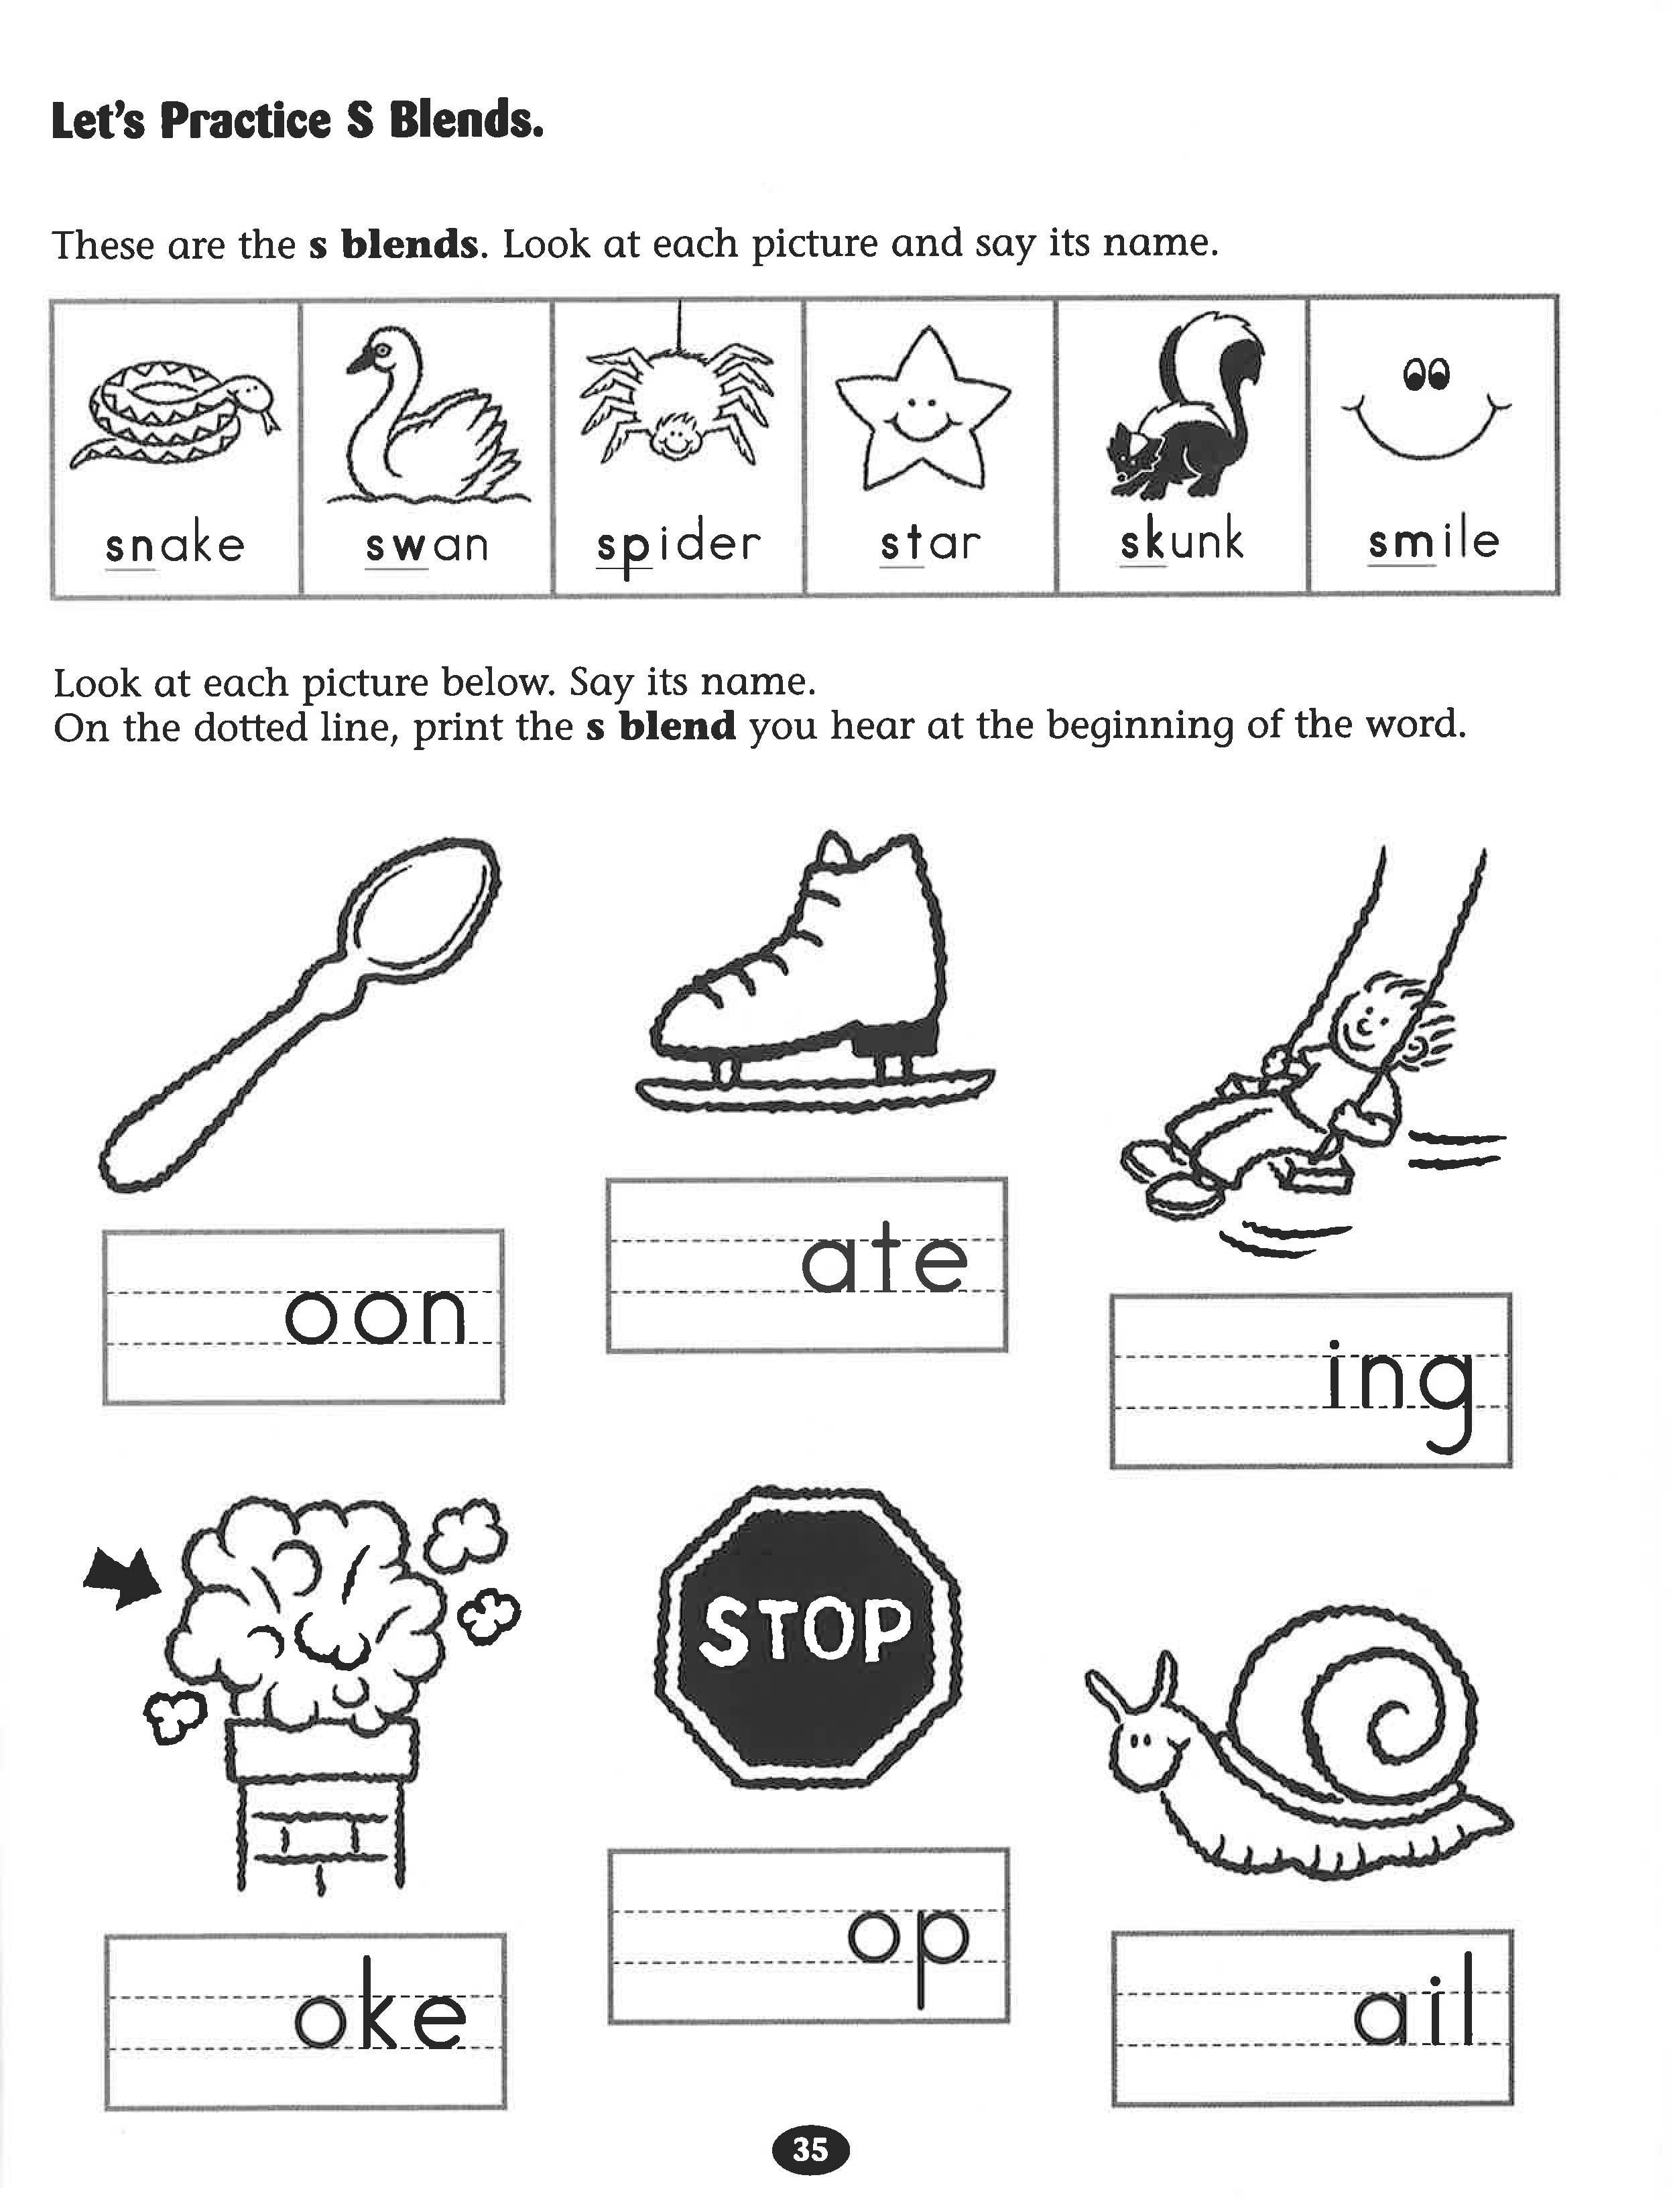 Uncategorized Blends Worksheets s blend worksheets termolak lets practice blends worksheet rockin reader pinterest